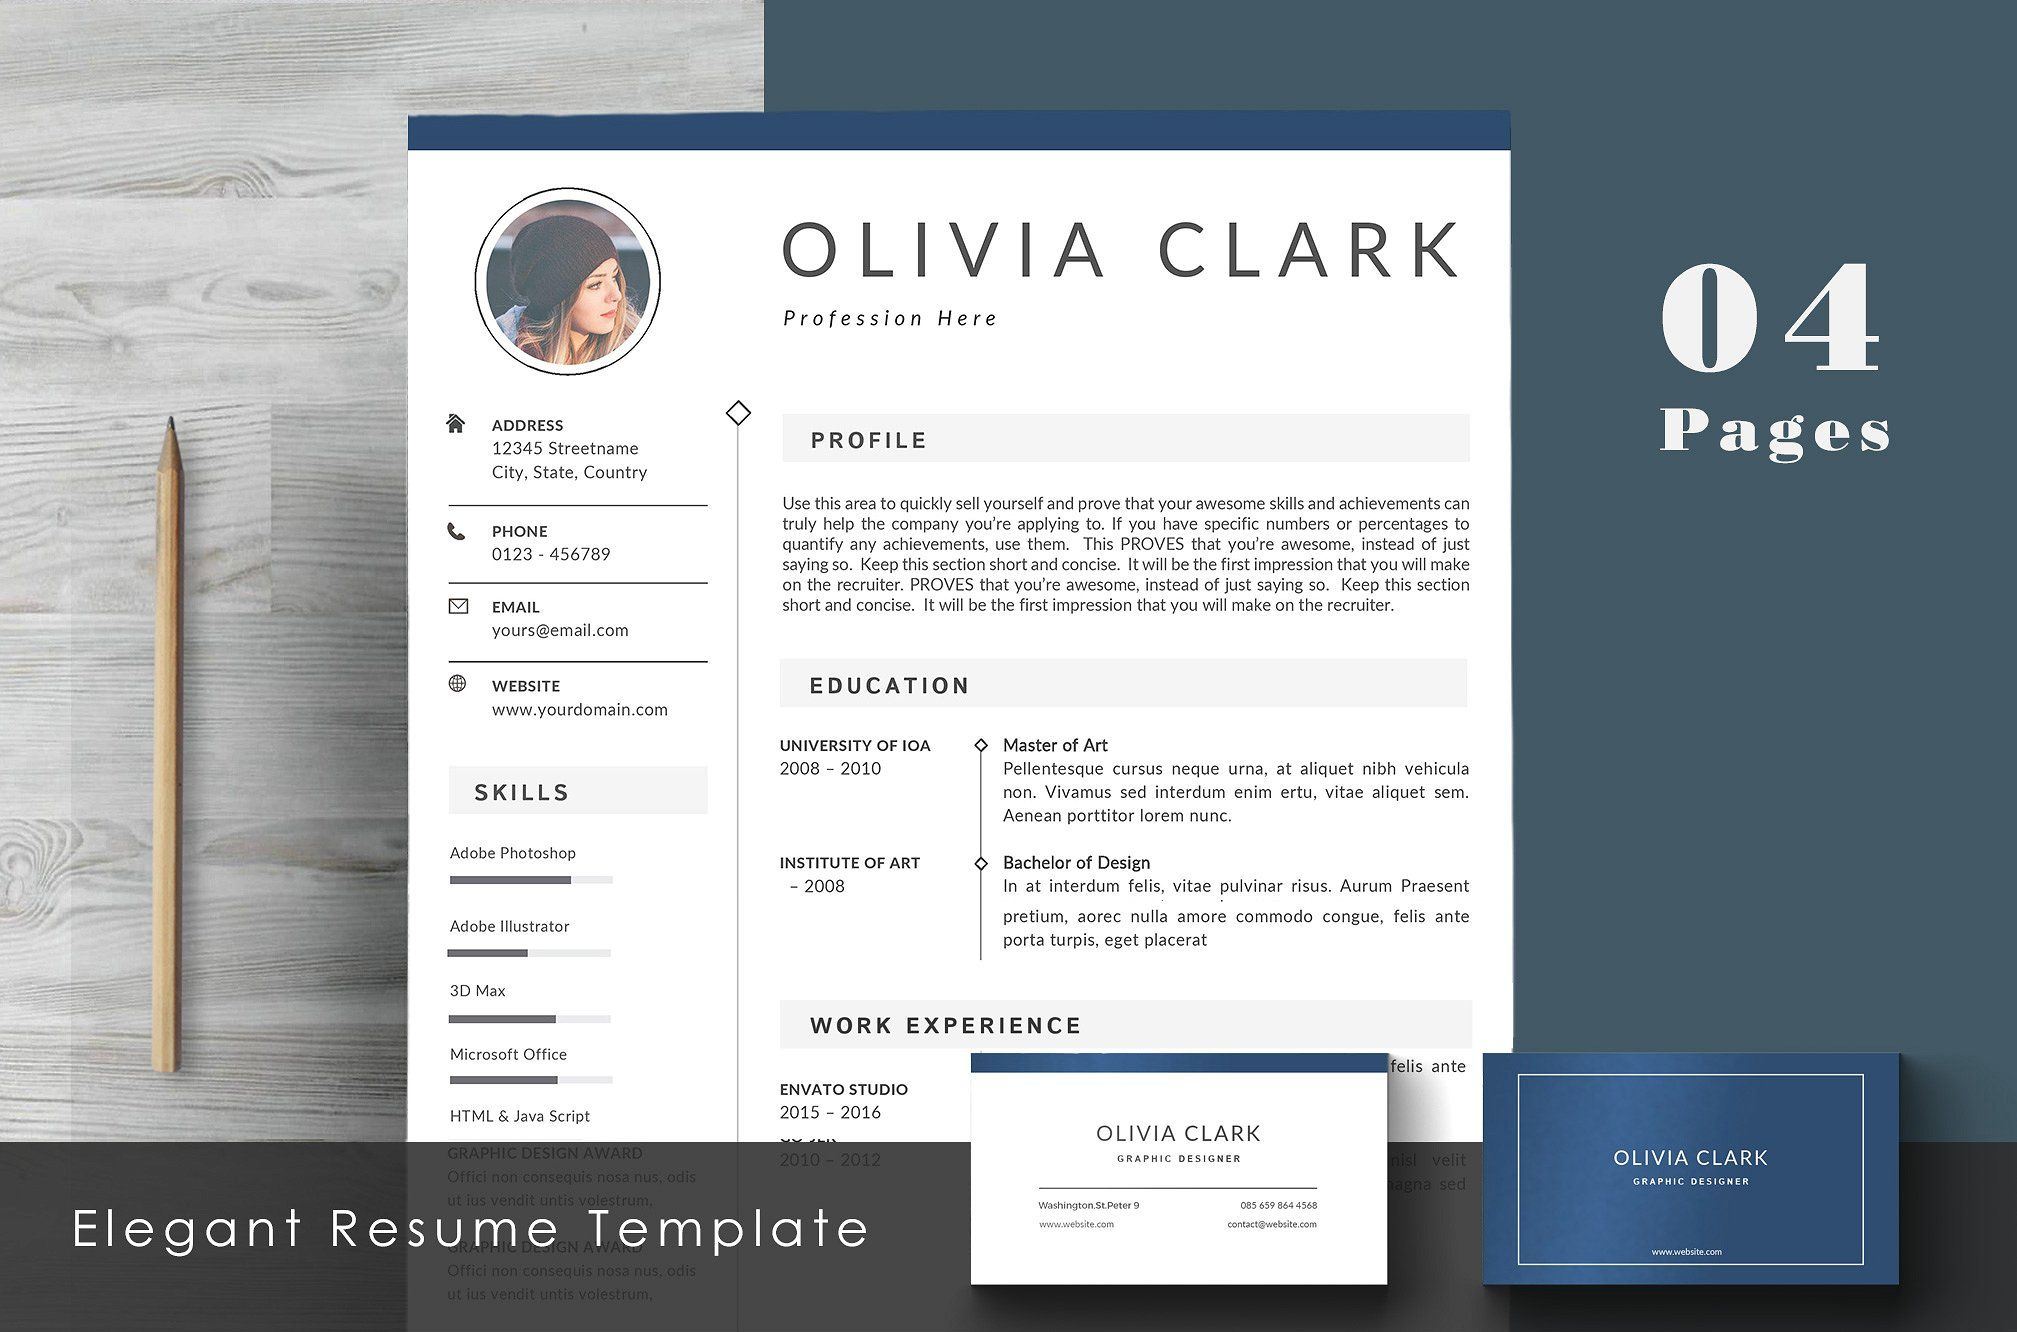 Clean Resume Template Cv Top 100 Resume Templates Pinterest